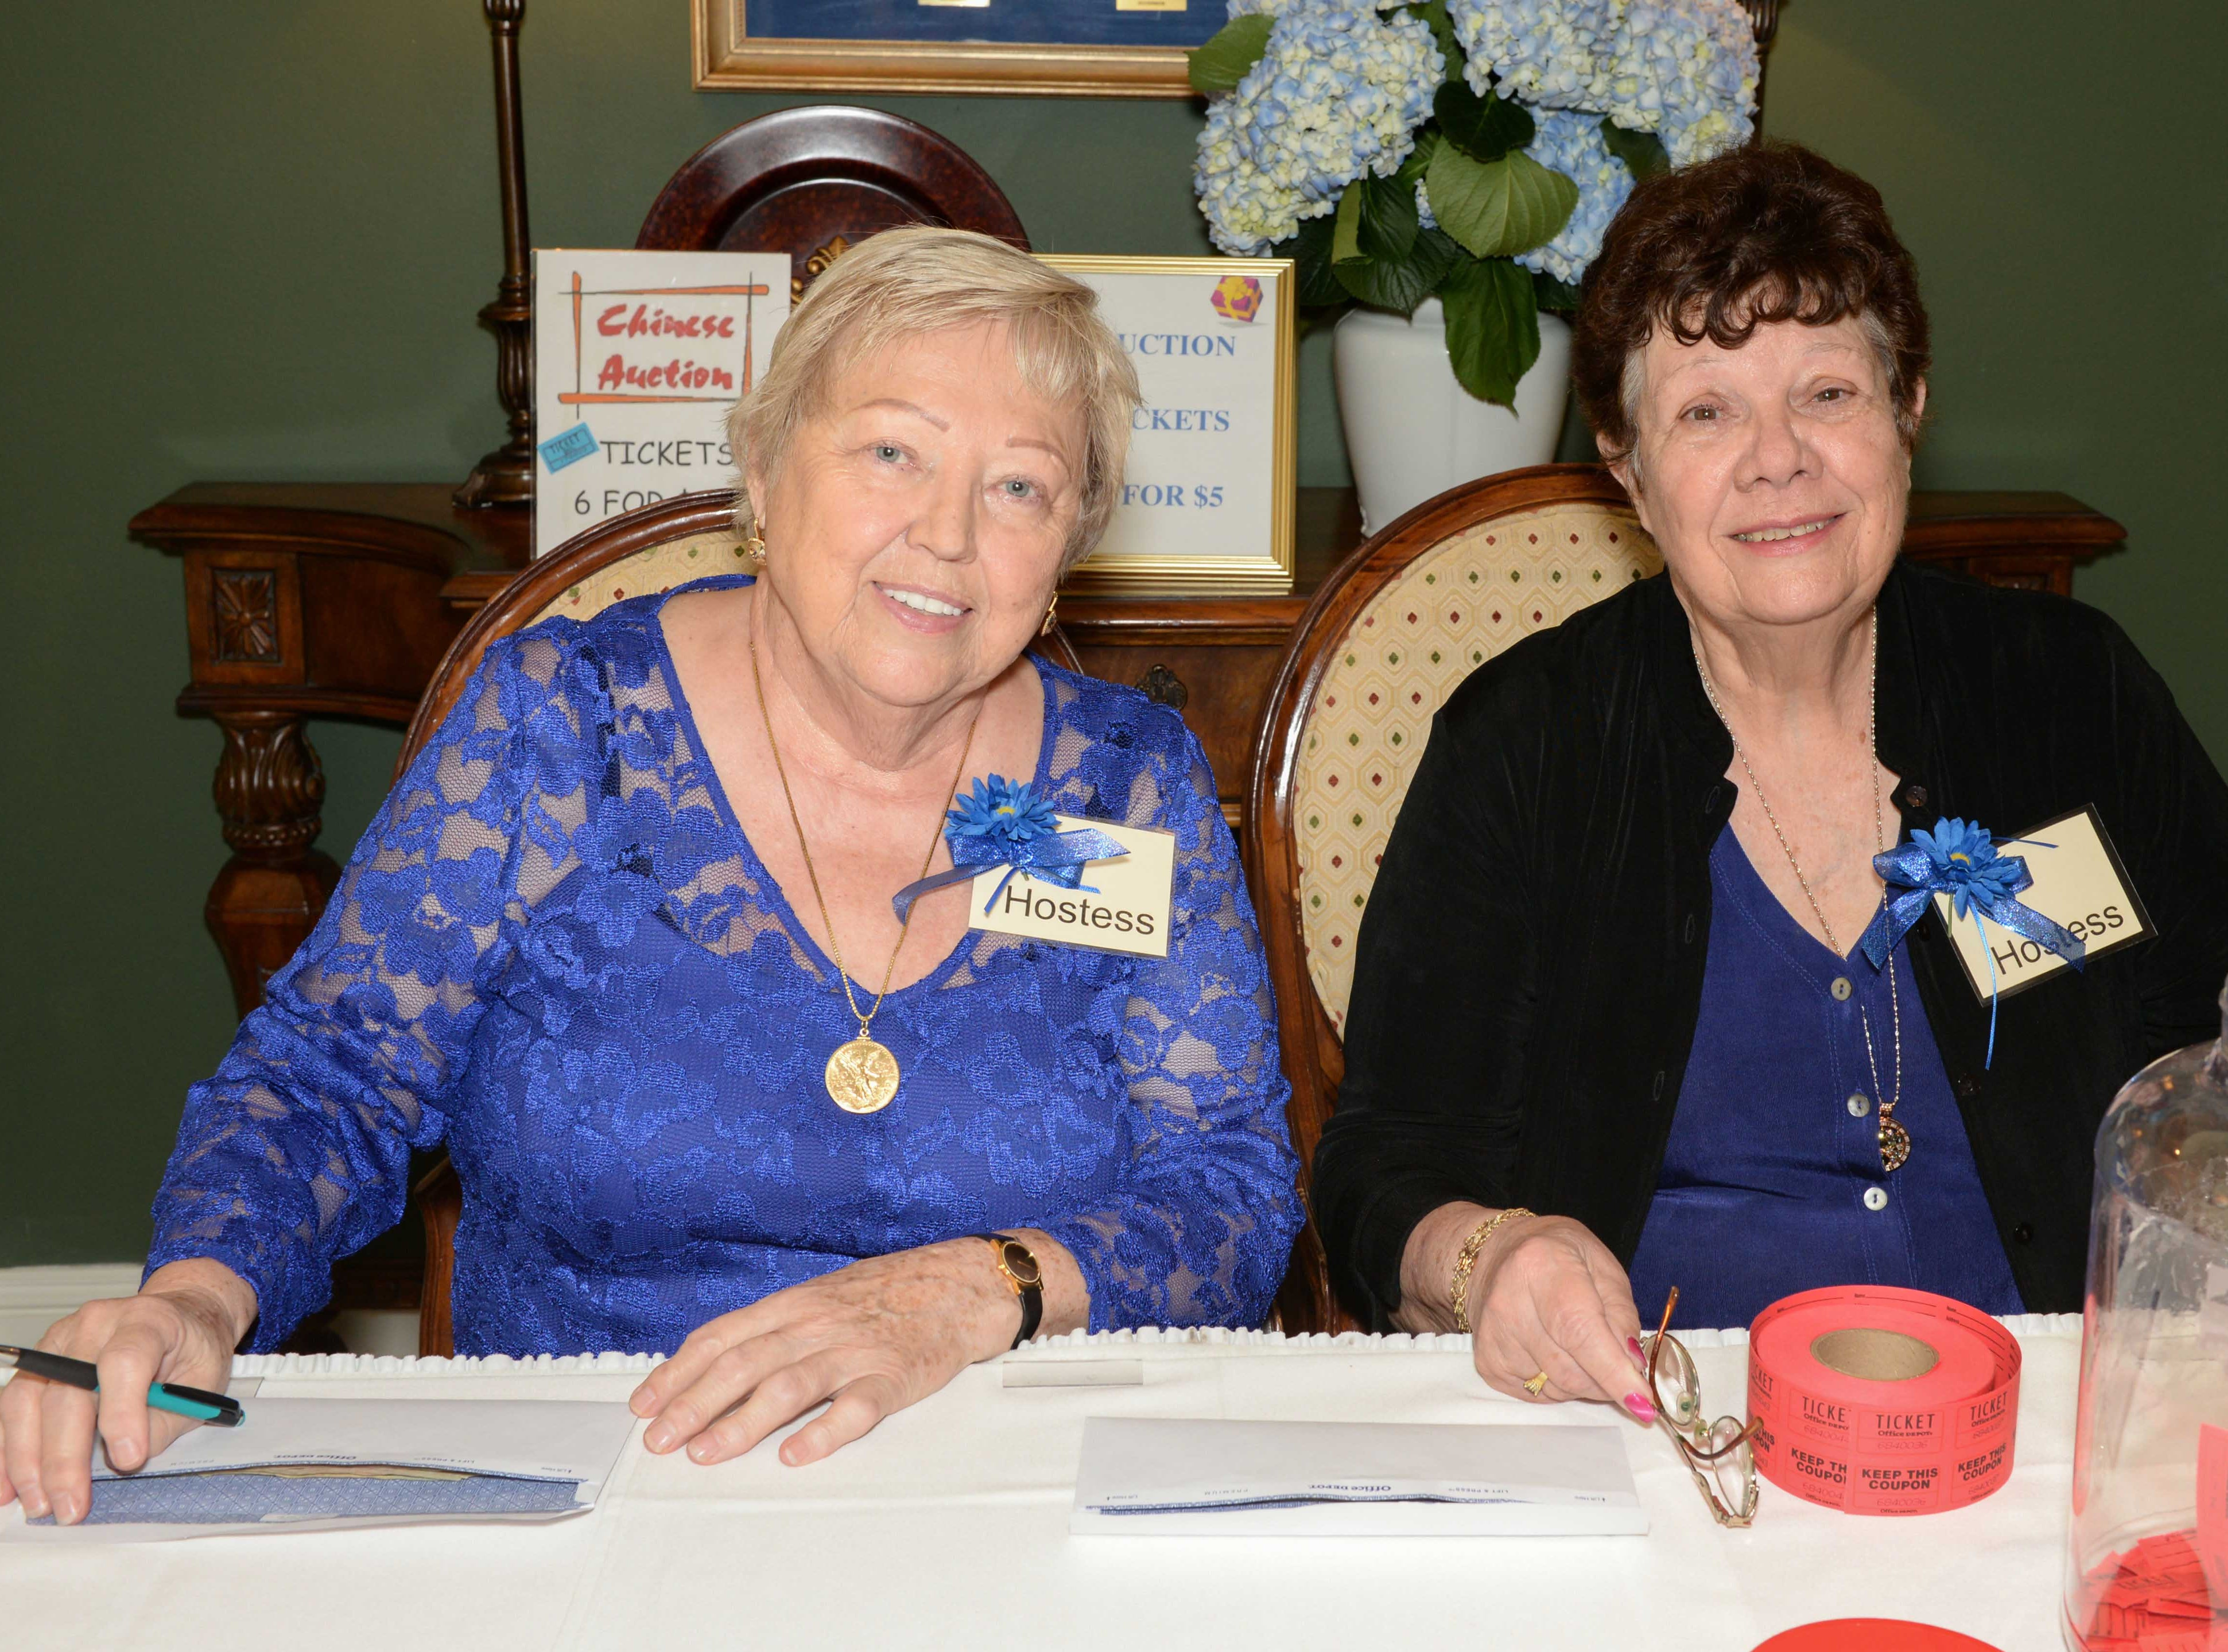 Helga Galli, left, and Mary Brower sell Chinese auction tickets at the Sapphire Anniversary party of the American Association of University Women Stuart Branch.